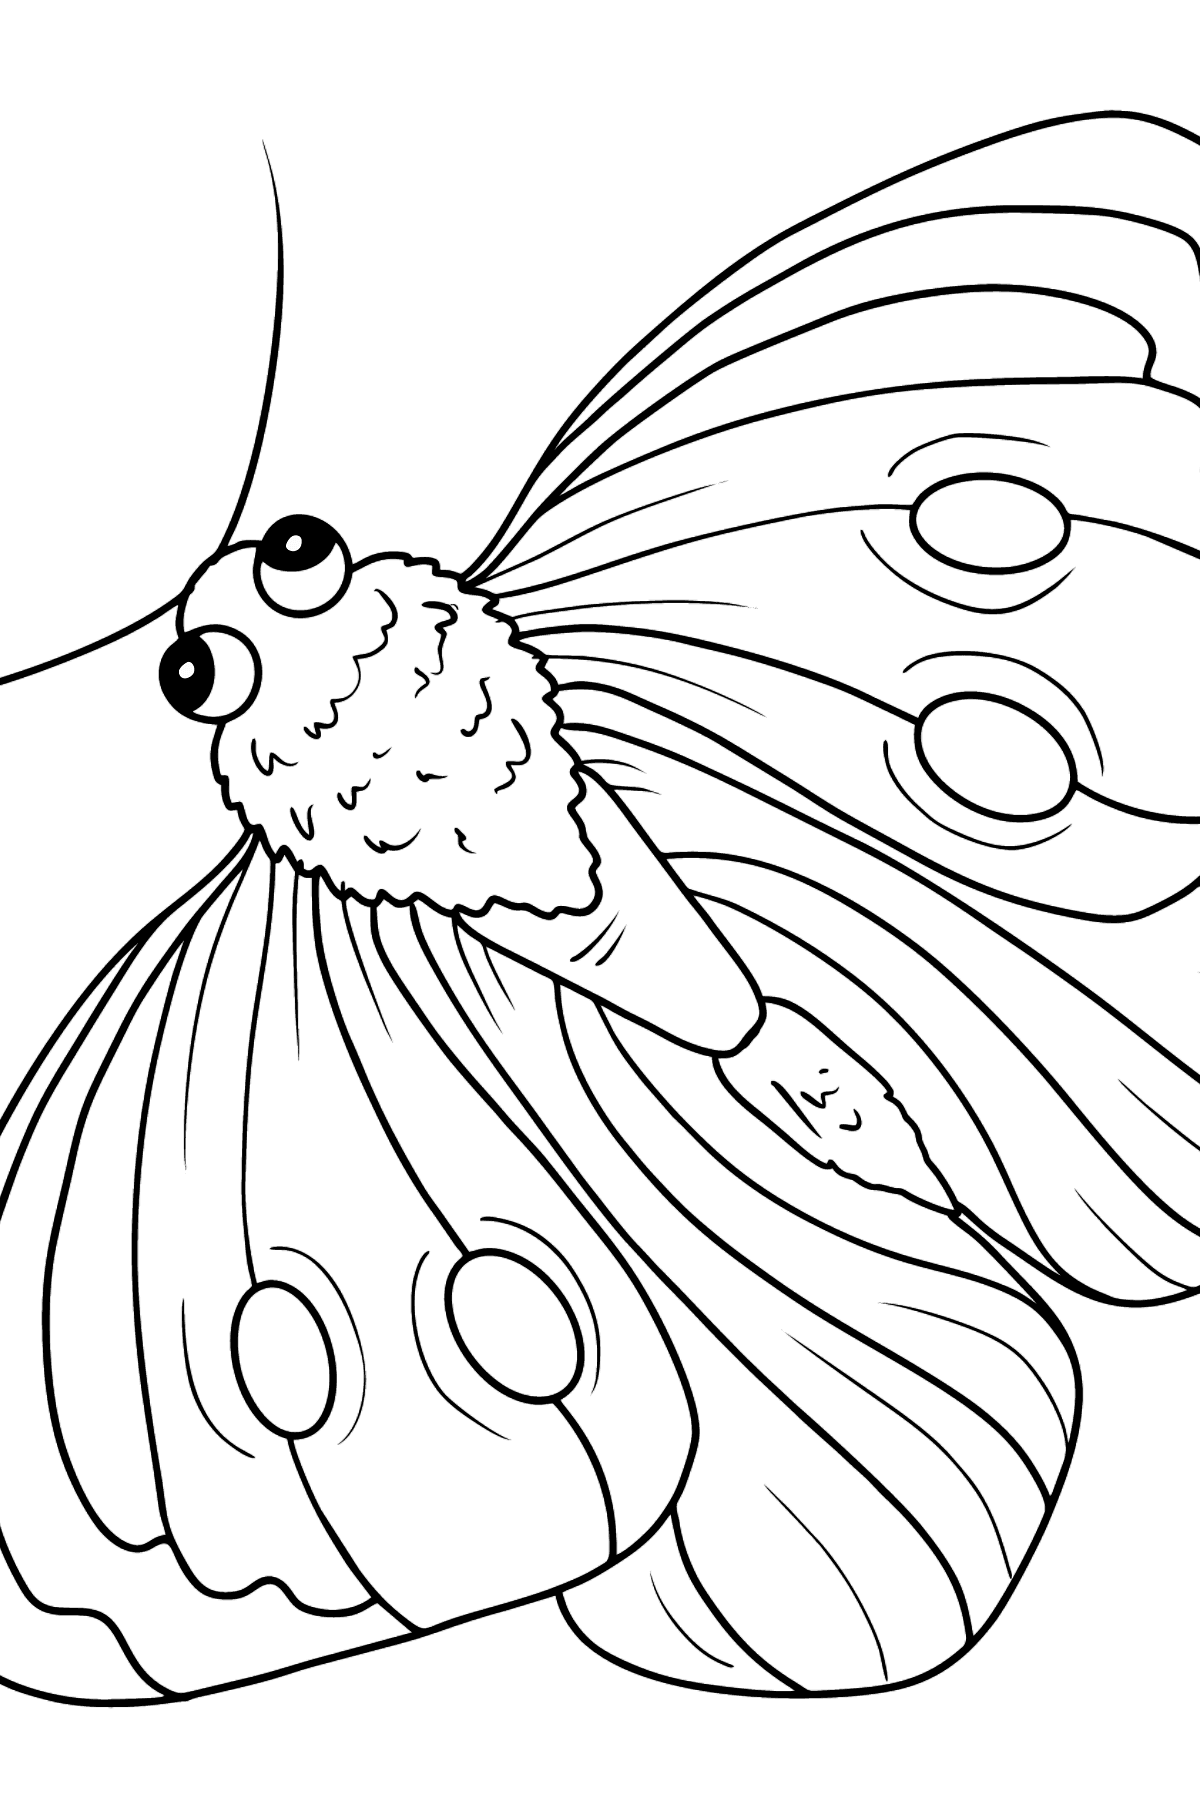 Pieris Butterfly coloring page - Coloring Pages for Kids